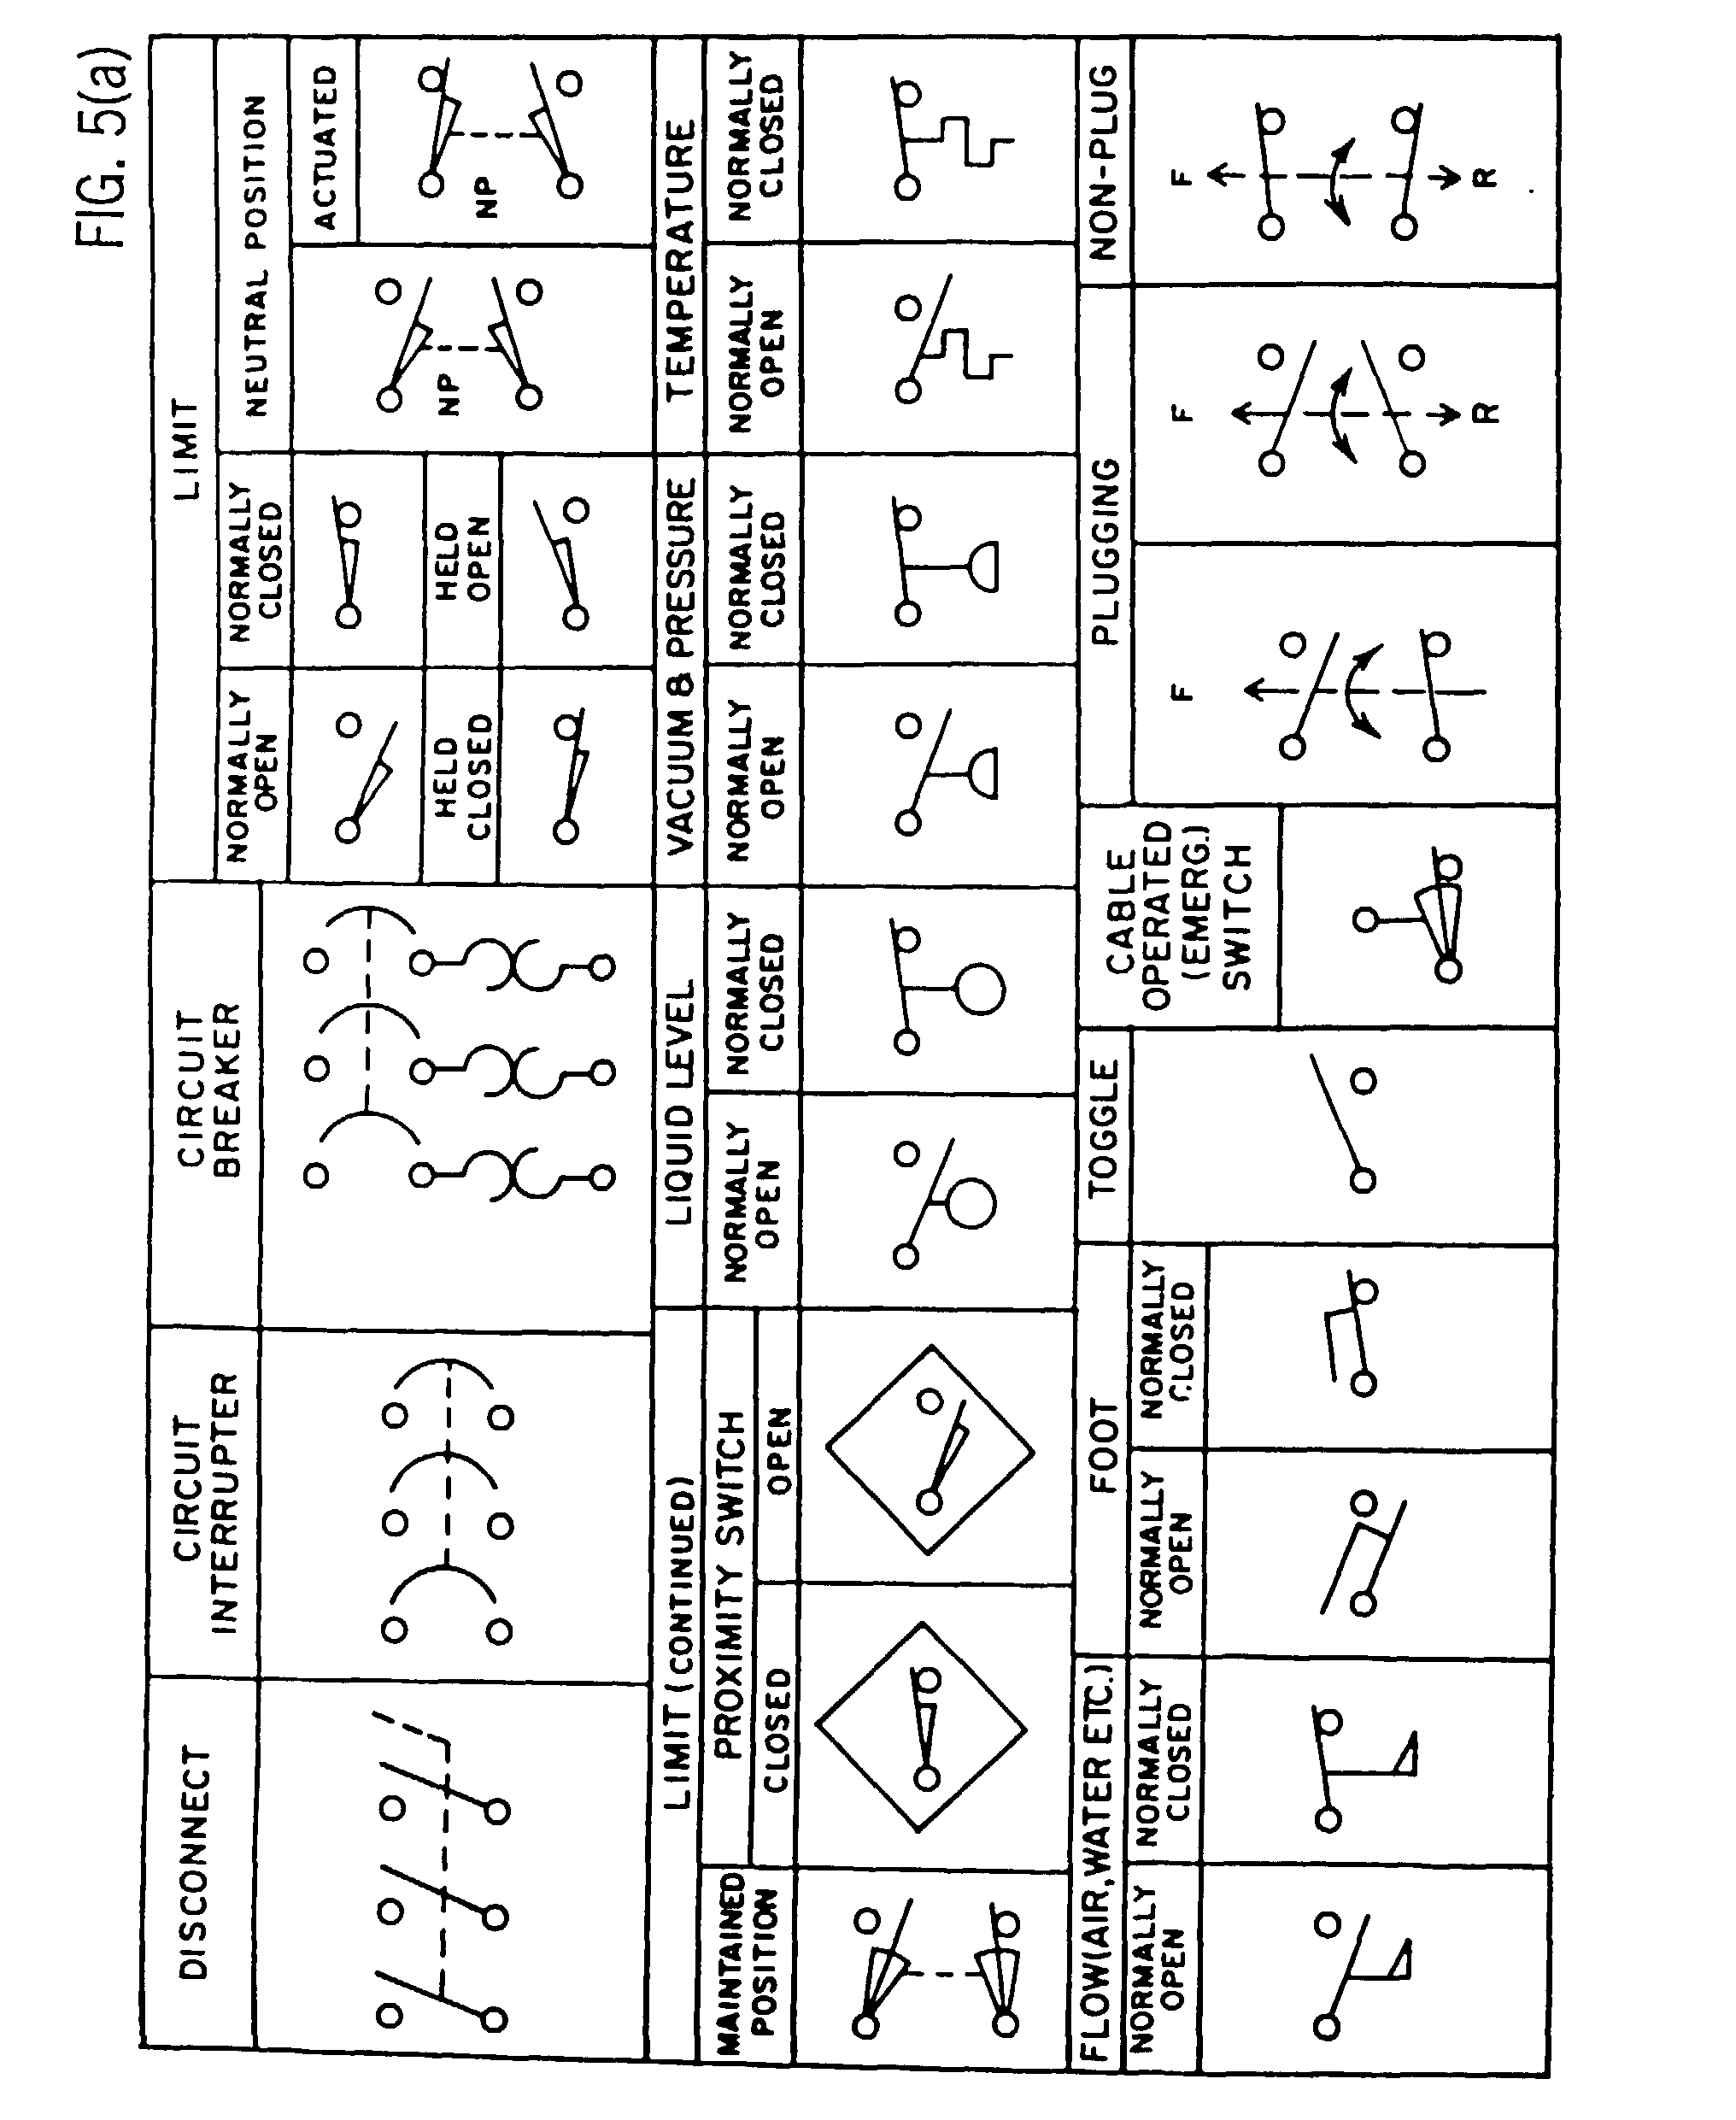 plc wiring diagram symbols Download-ponent ladder logic symbols Help Web Based Ladder Logic Demo 18-l